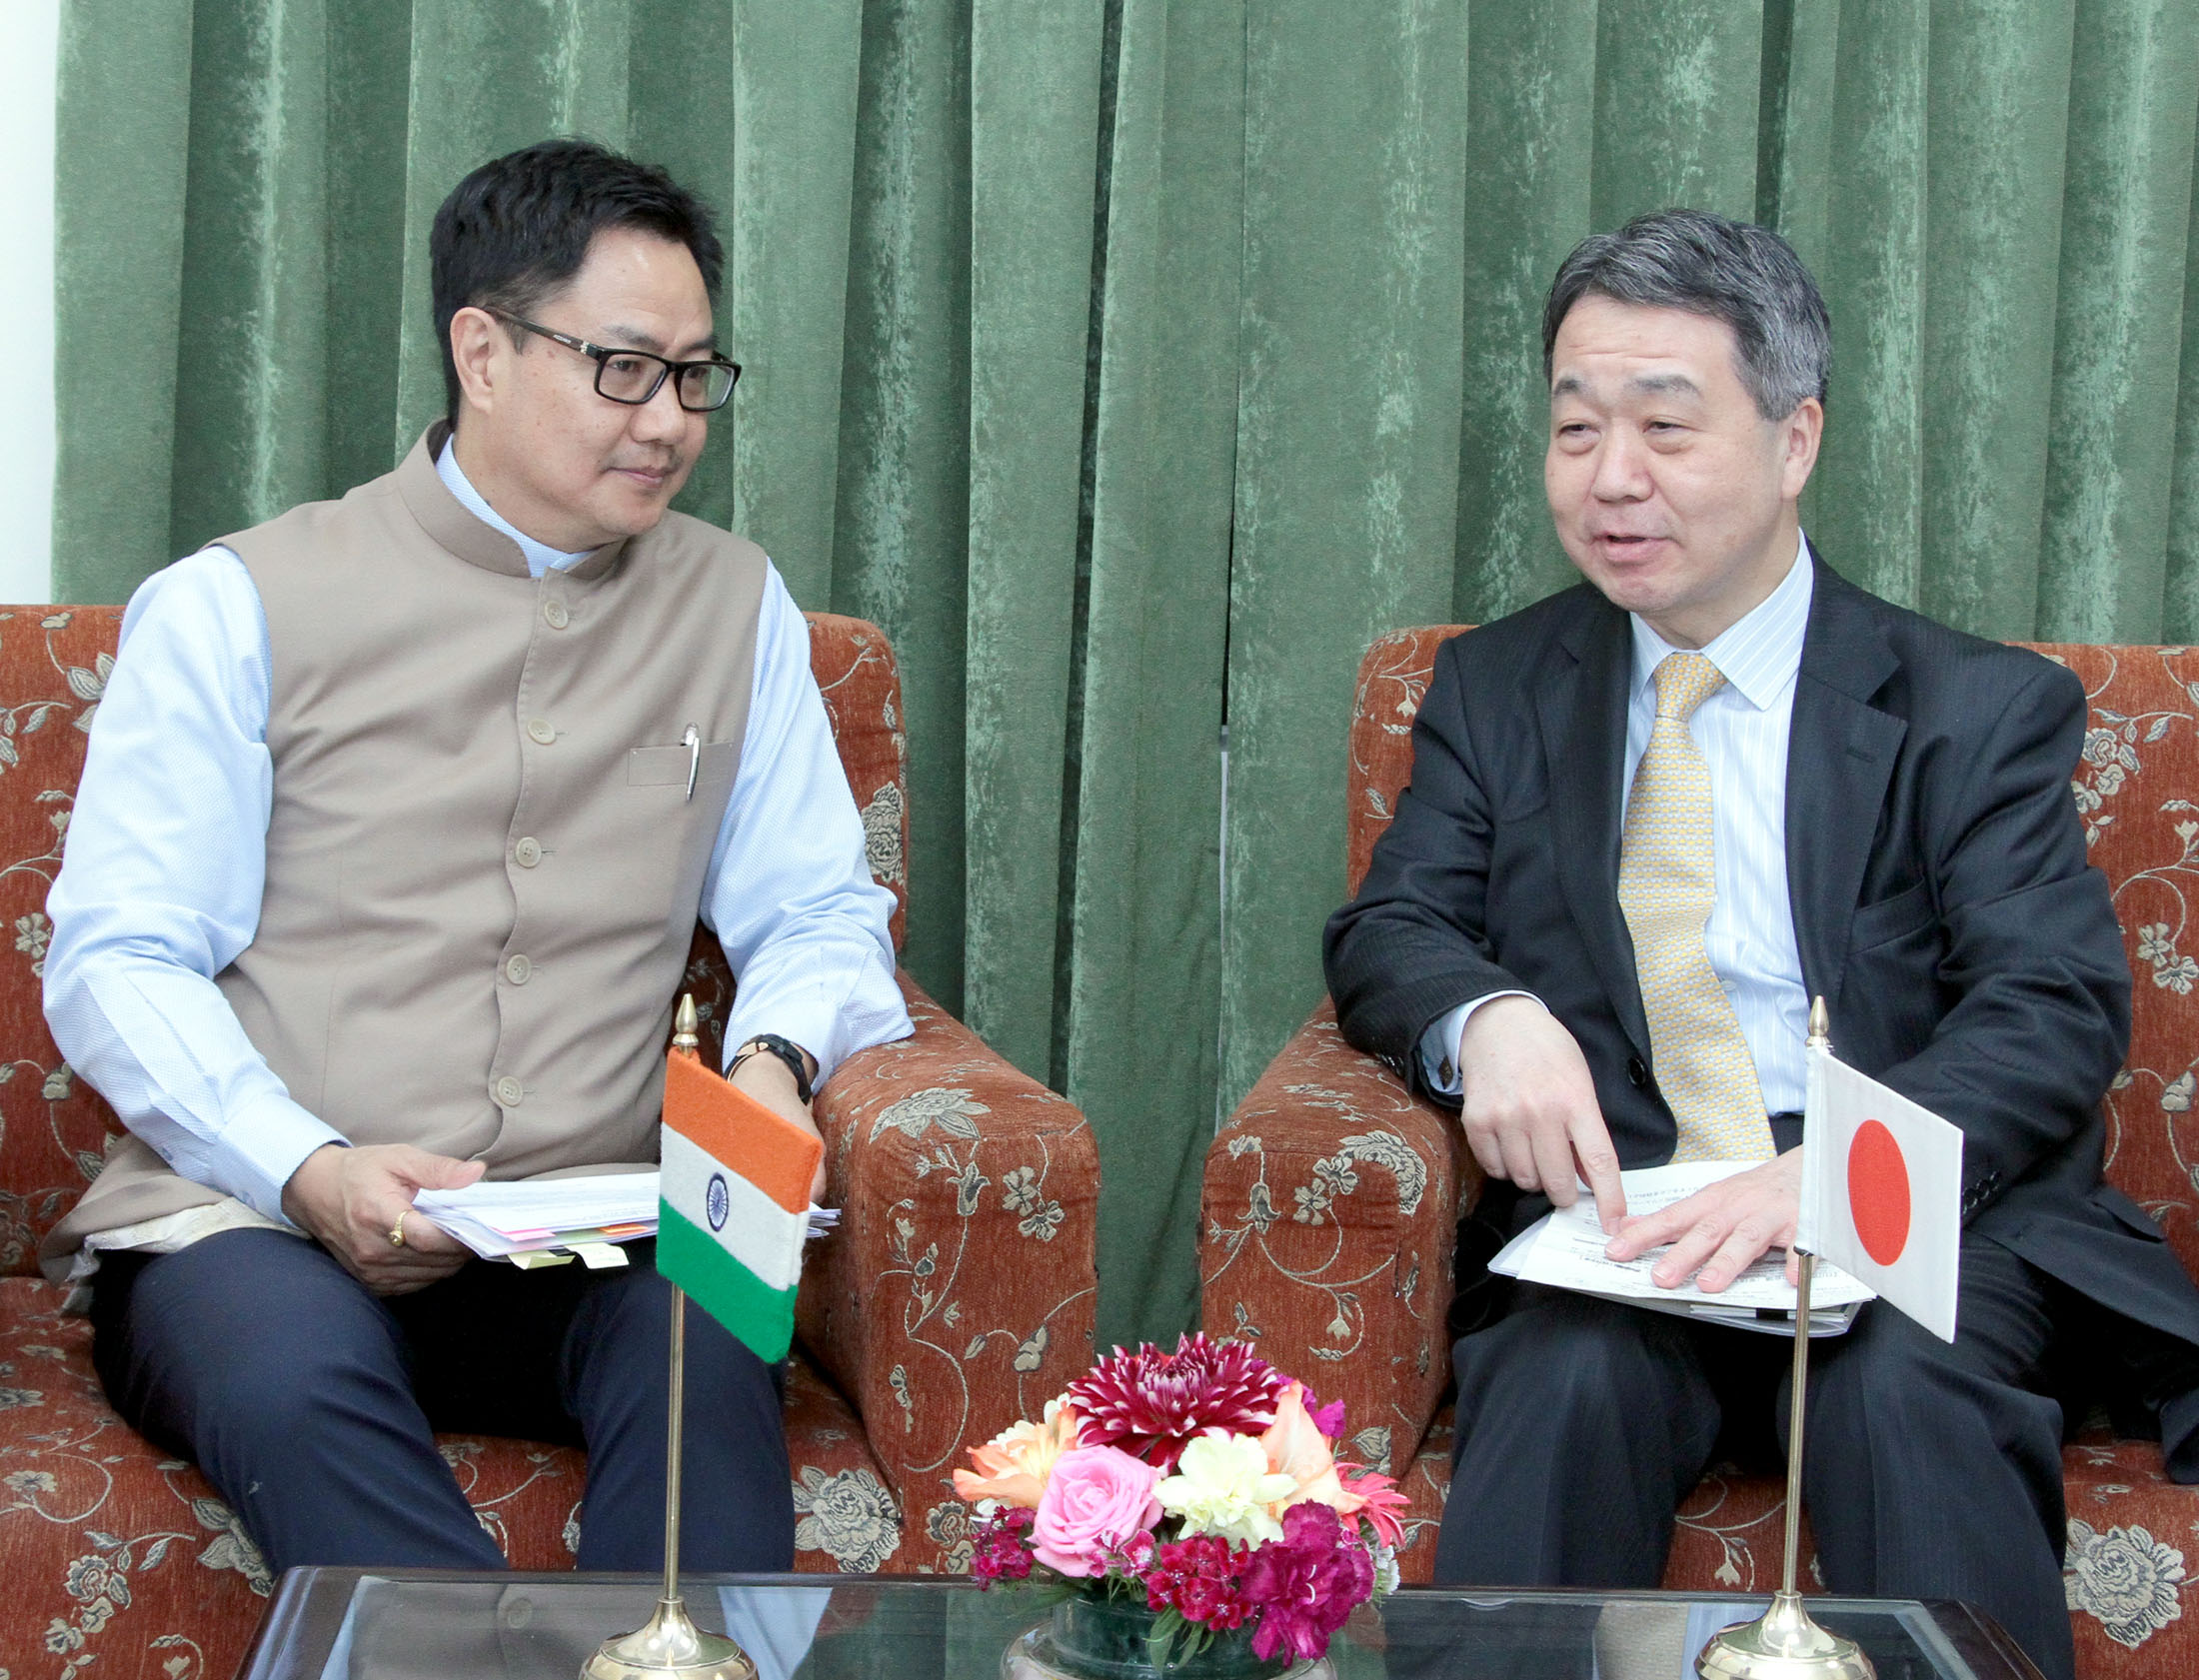 File Kiren Rijiju In A Meeting With The Vice Minister For Policy